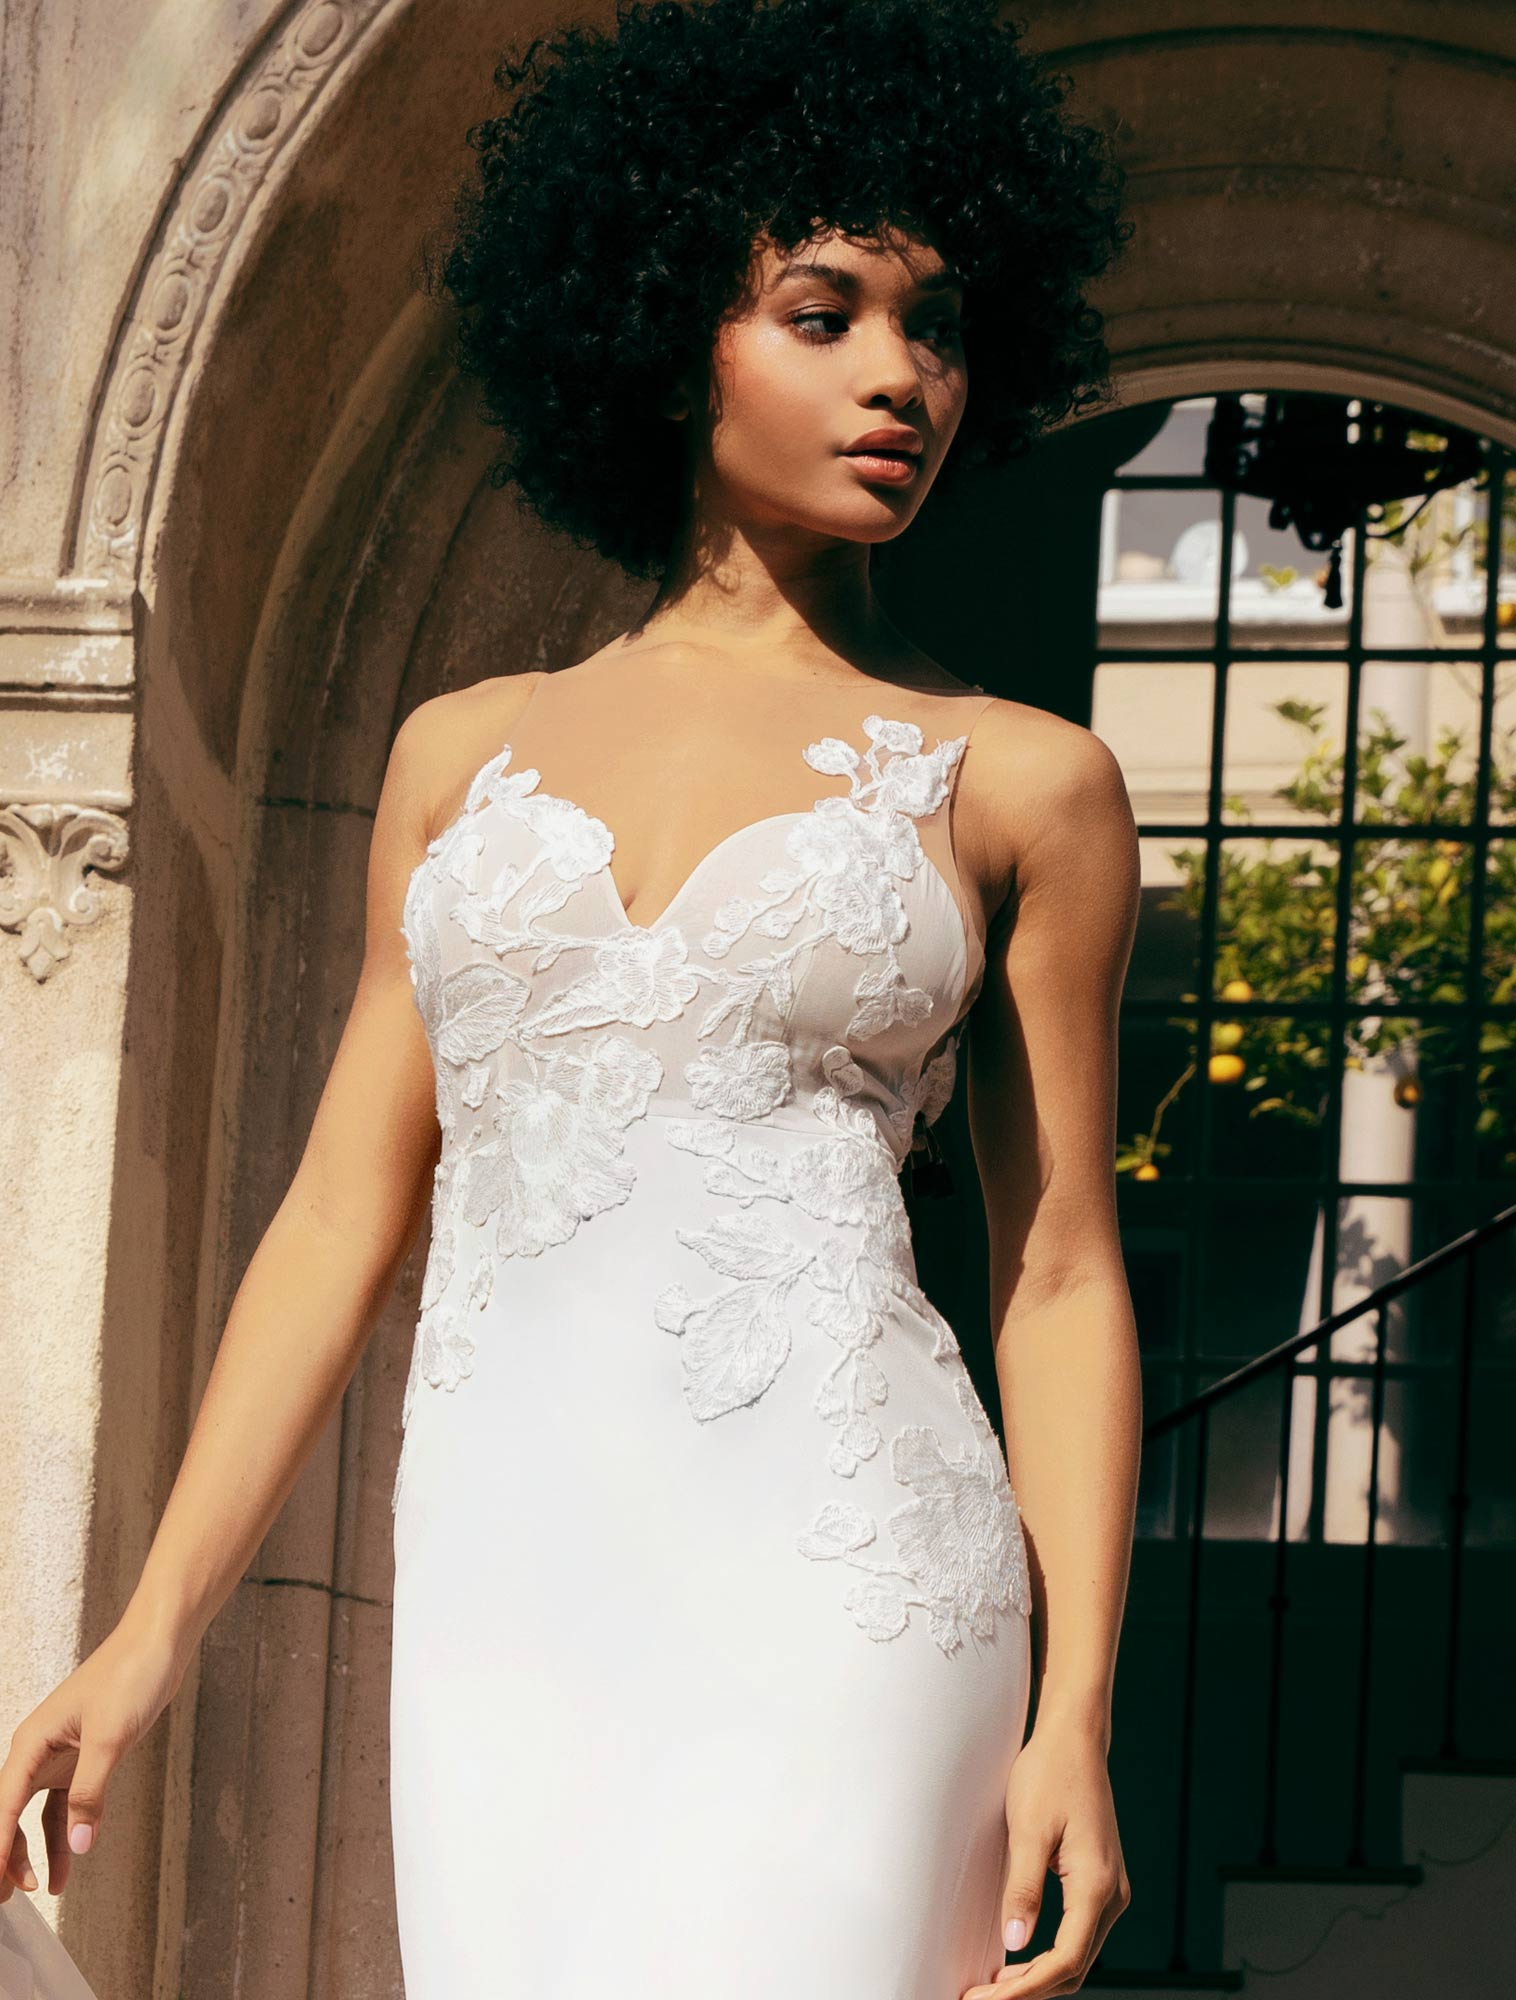 Wedding Dresses Luxury Wedding Gowns At Impossible Prices Floravere